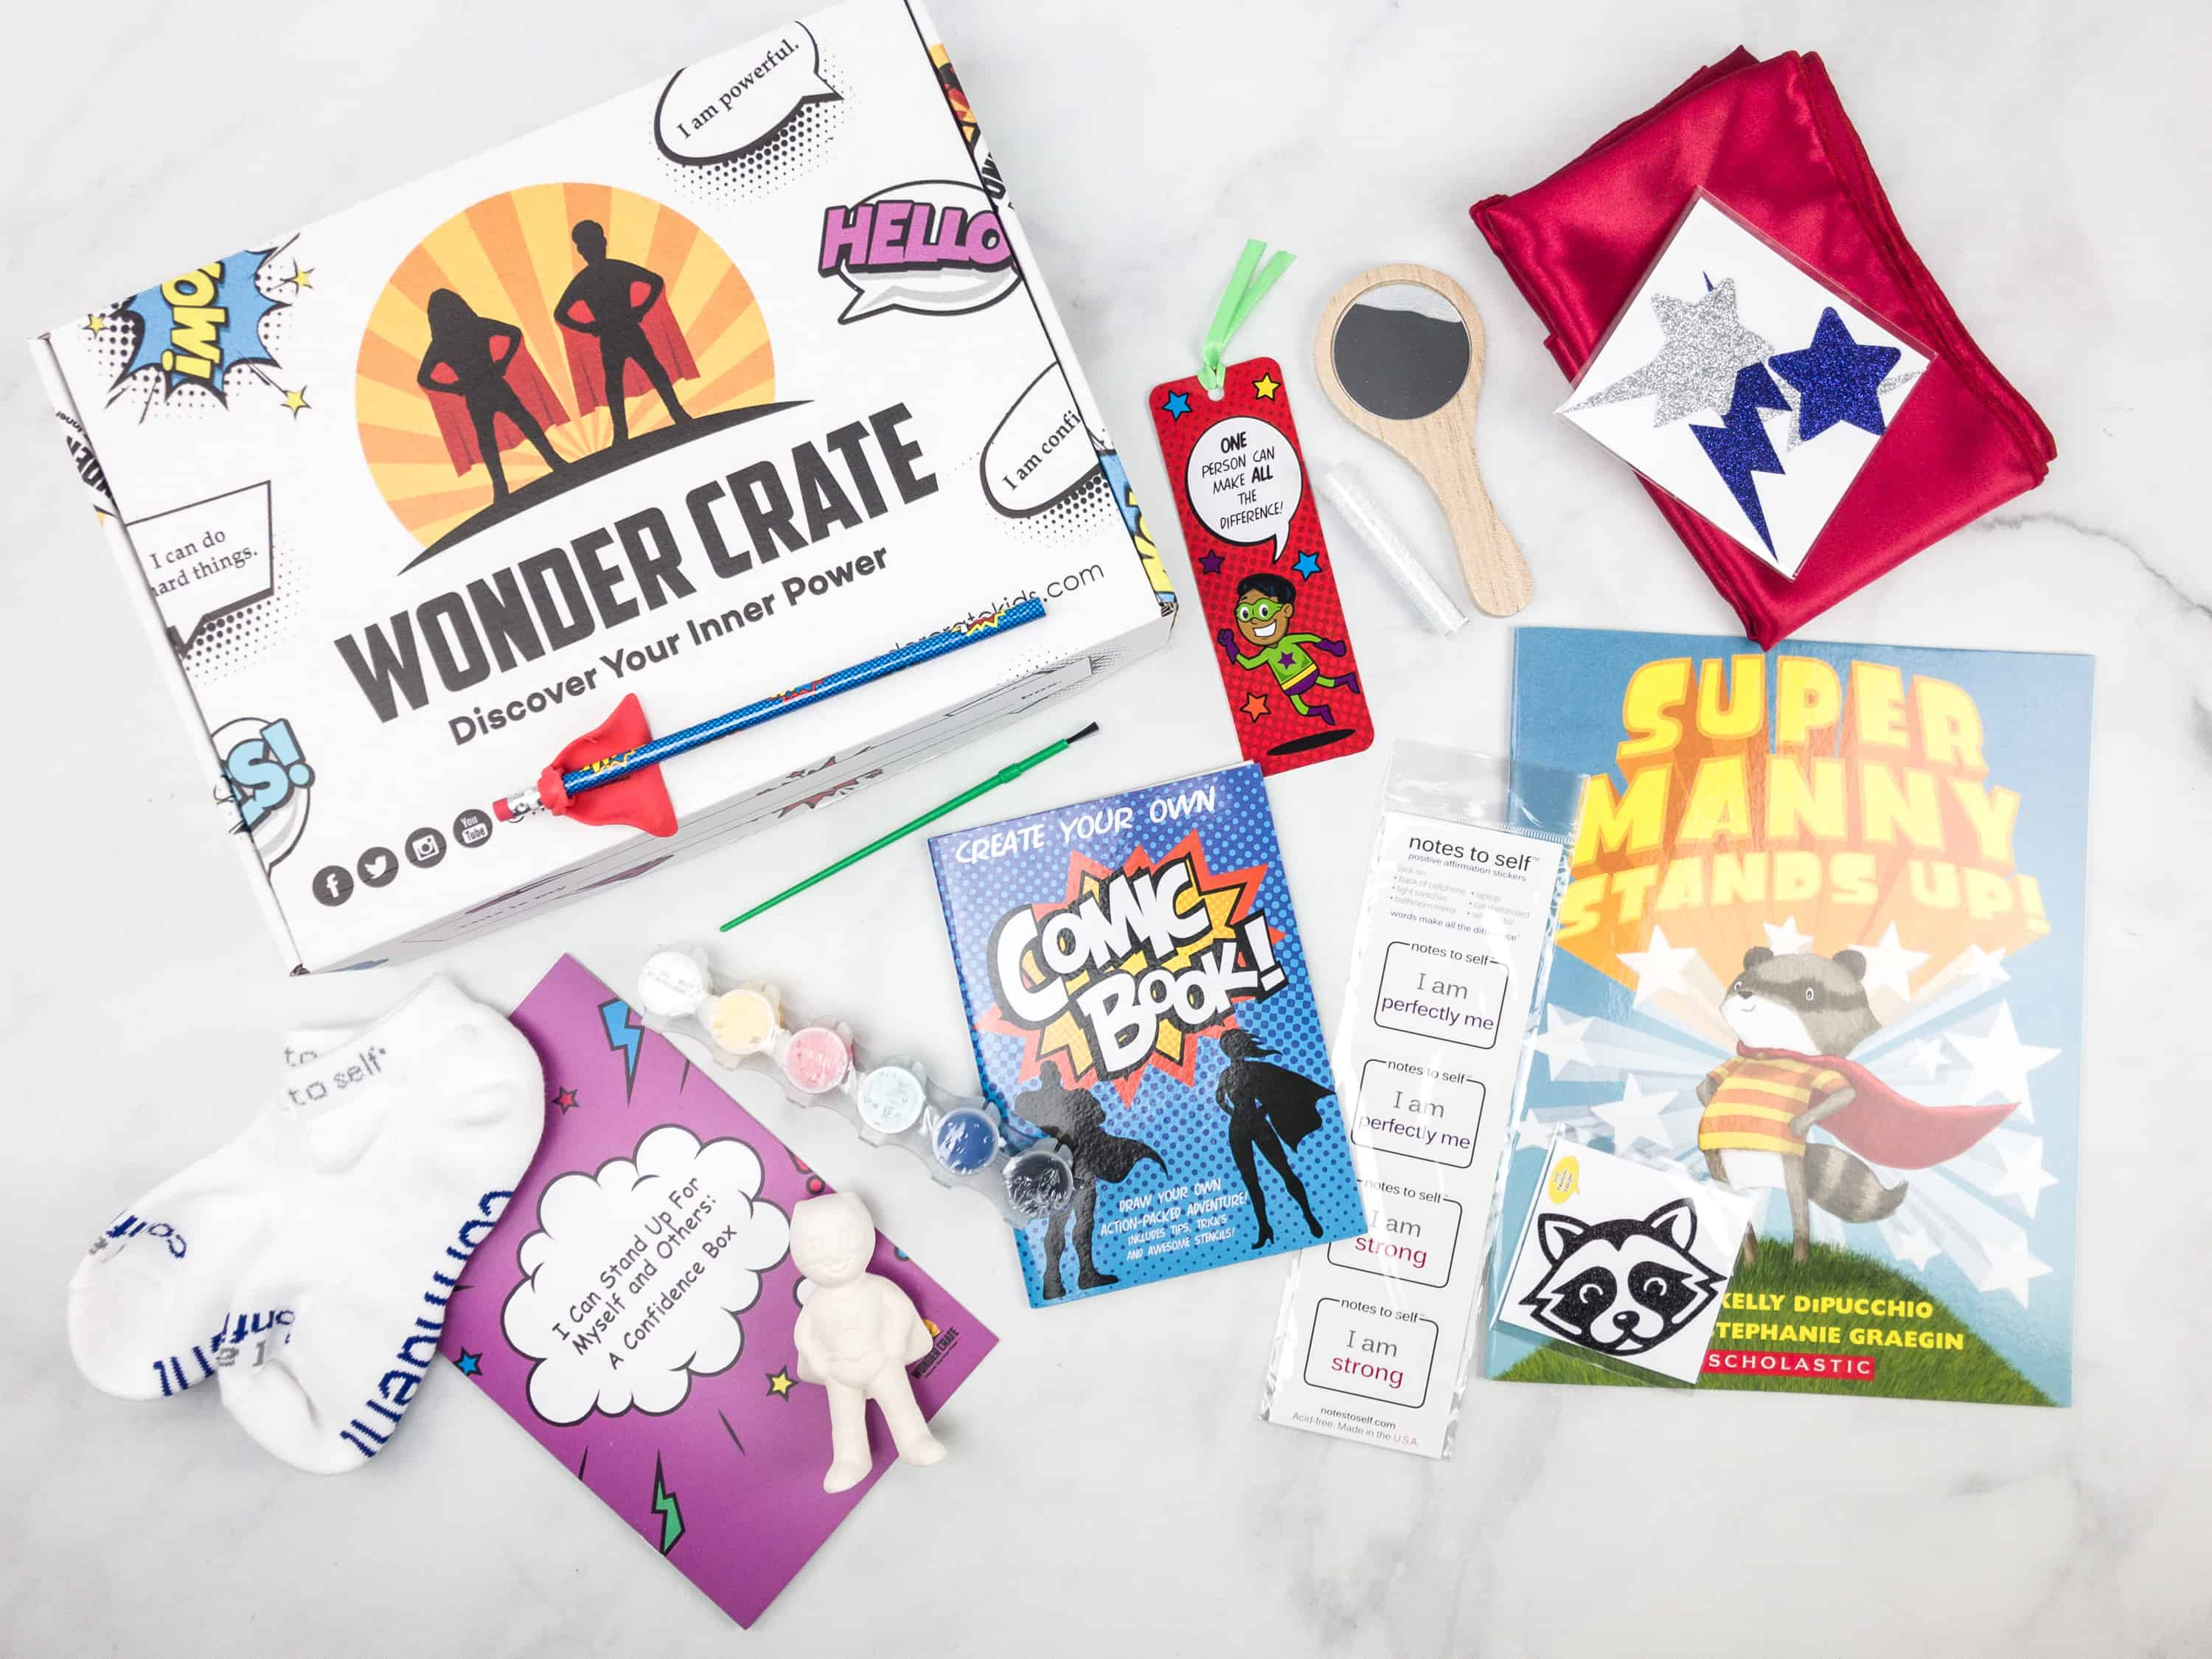 Wonder Crate Confidence Box Review + Coupon!